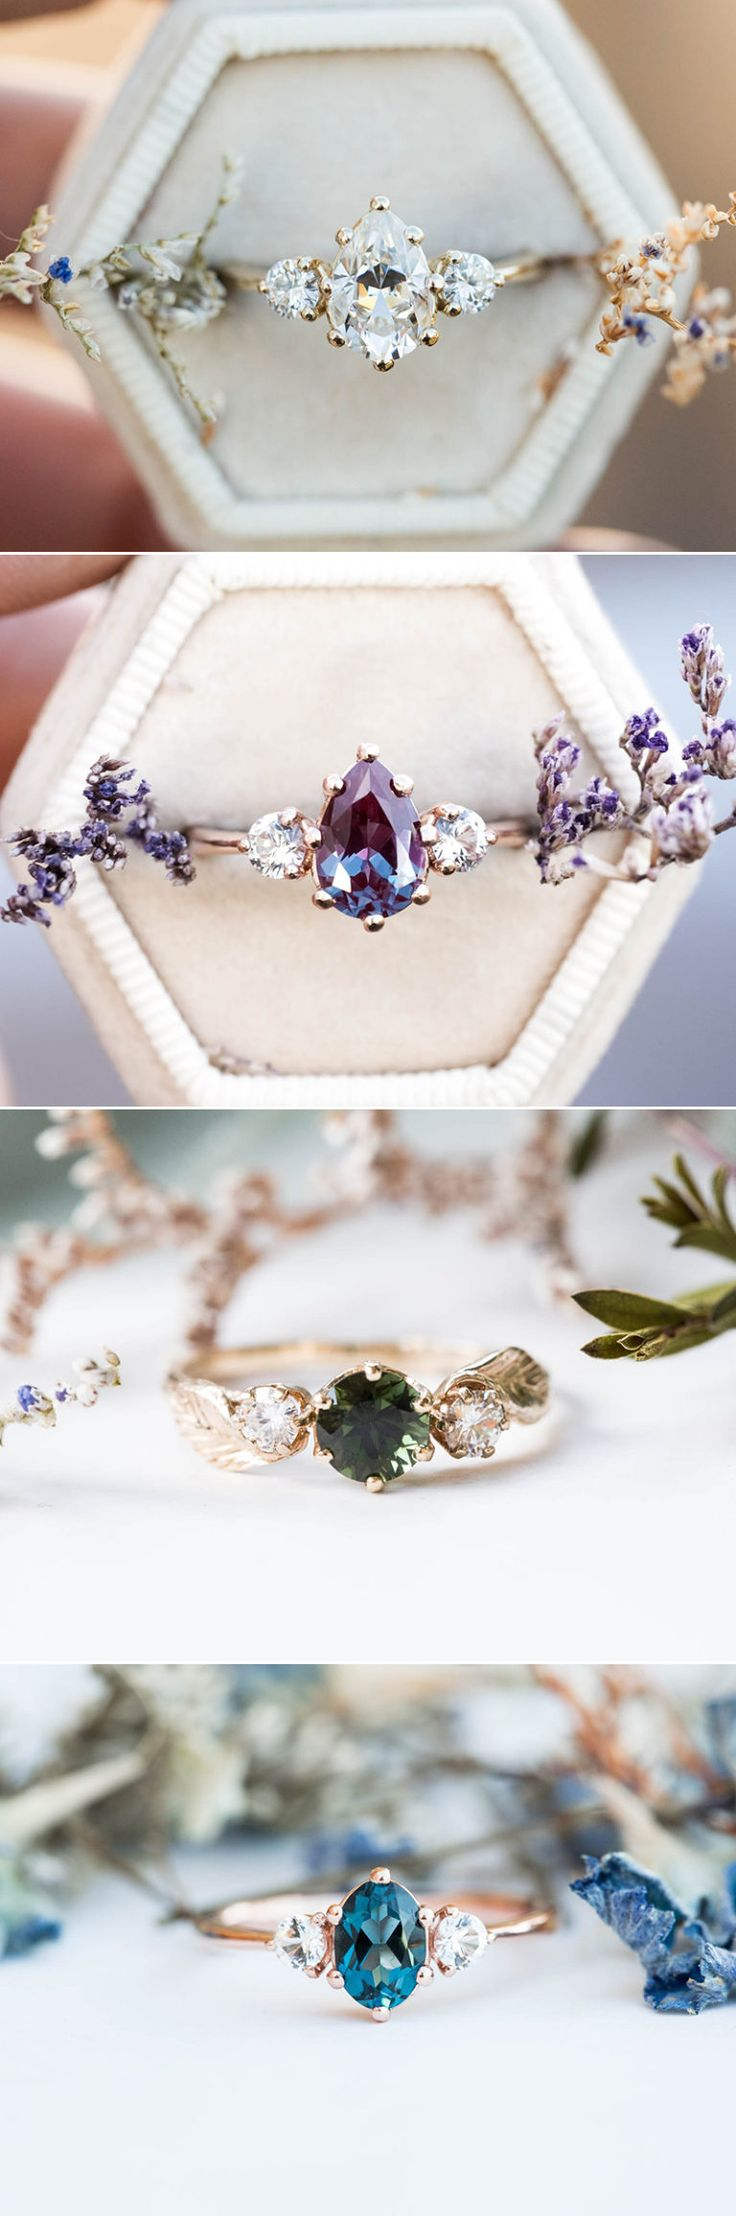 A New Take on The Classics! 7 Timeless Engagement Ring Styles For Modern Brides!